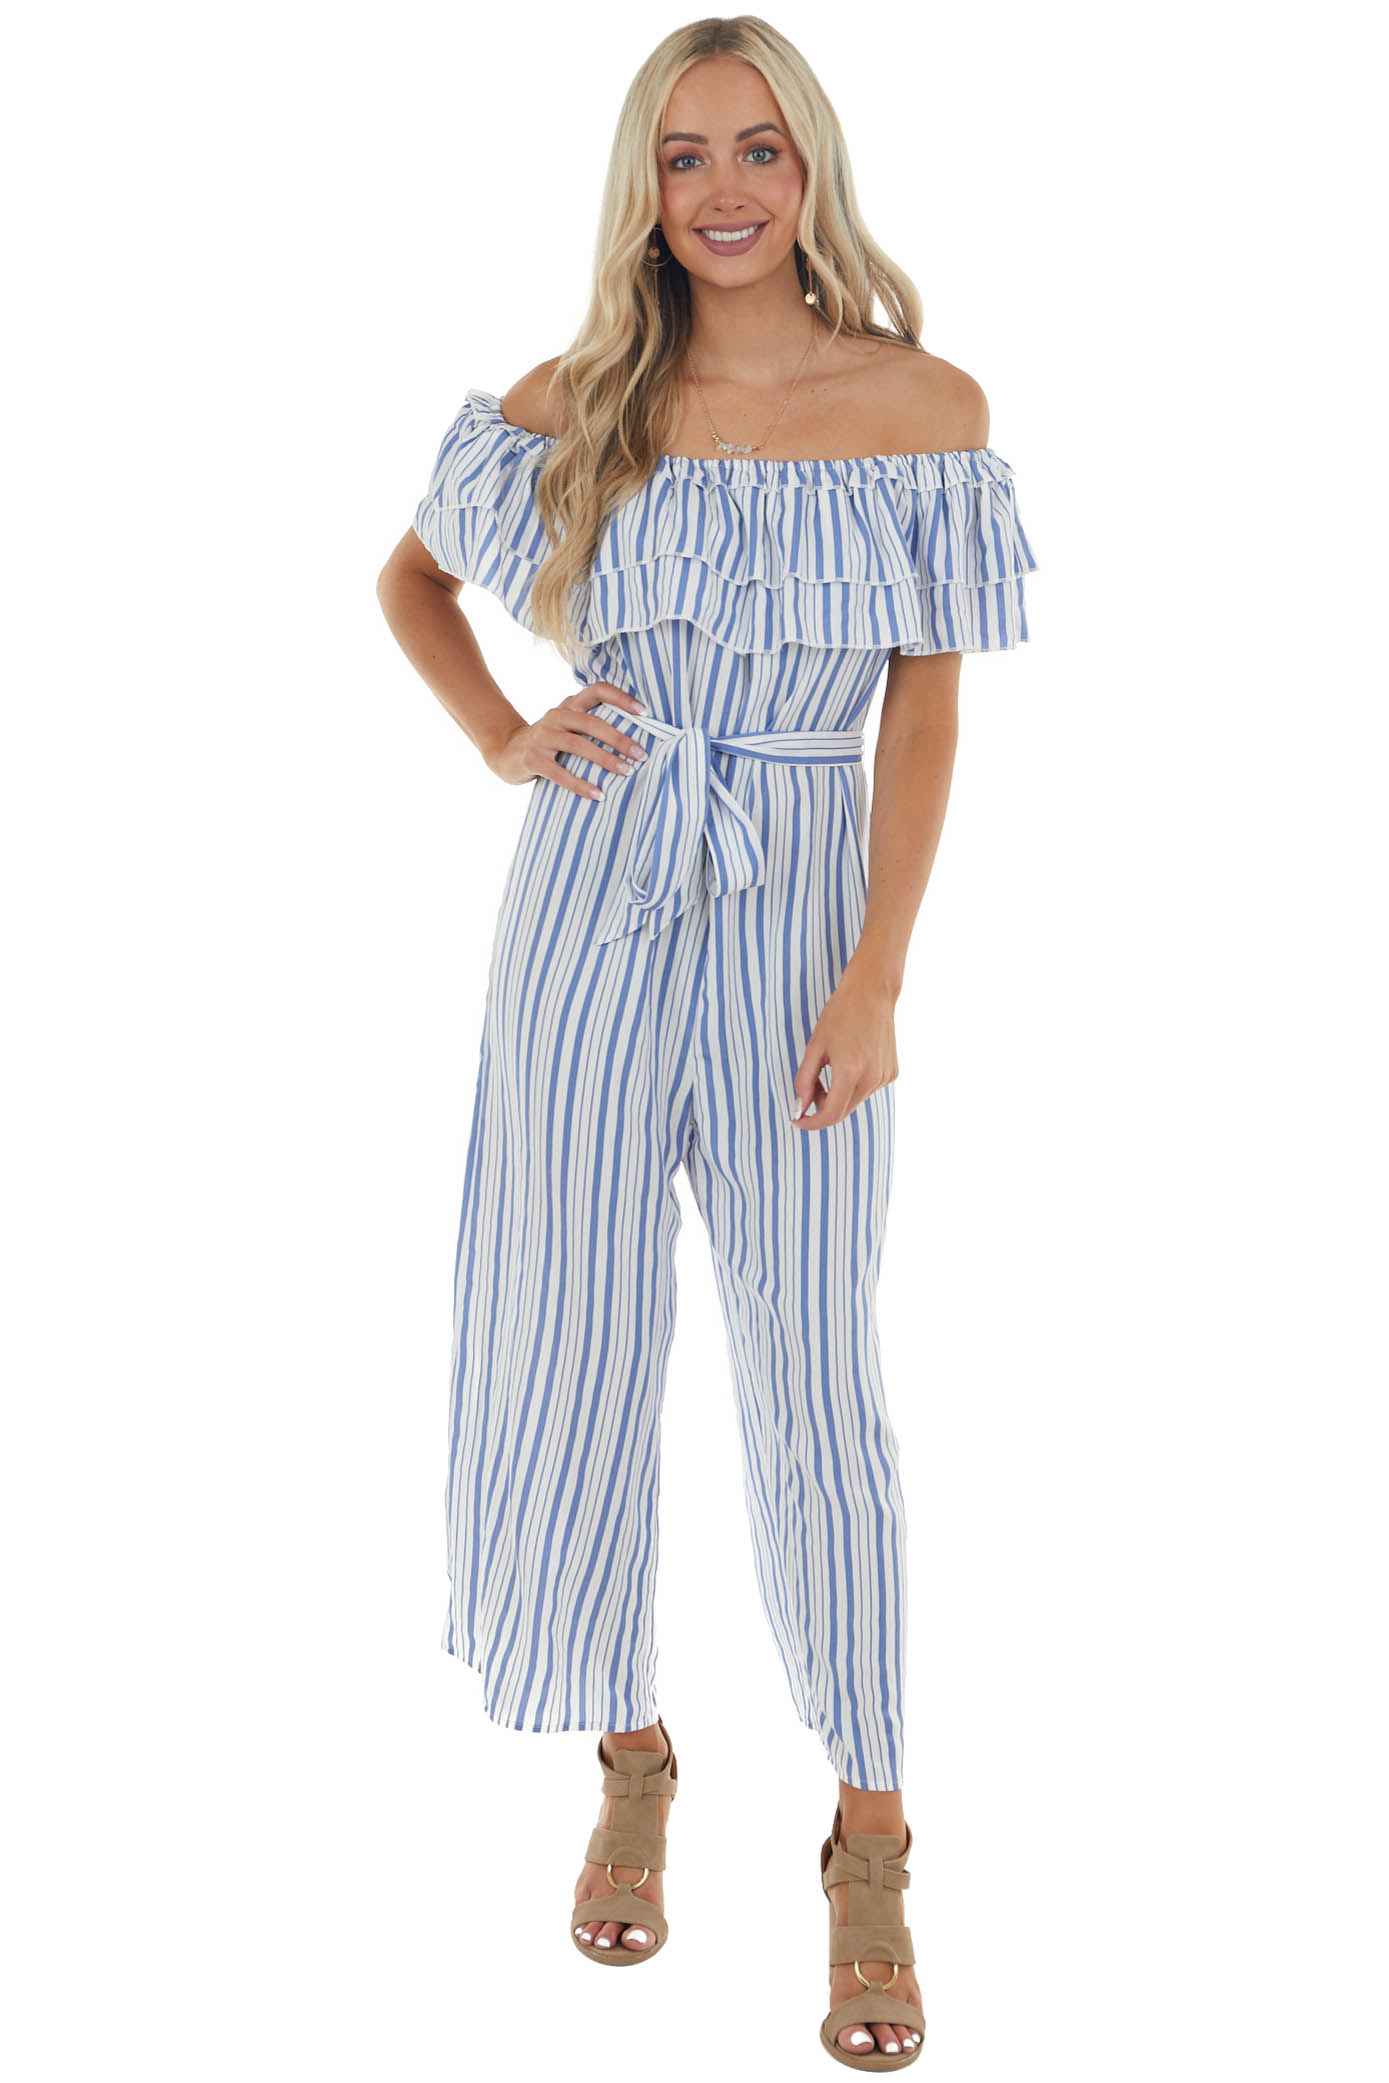 Saphire and Off White Striped Ruffled Jumpsuit